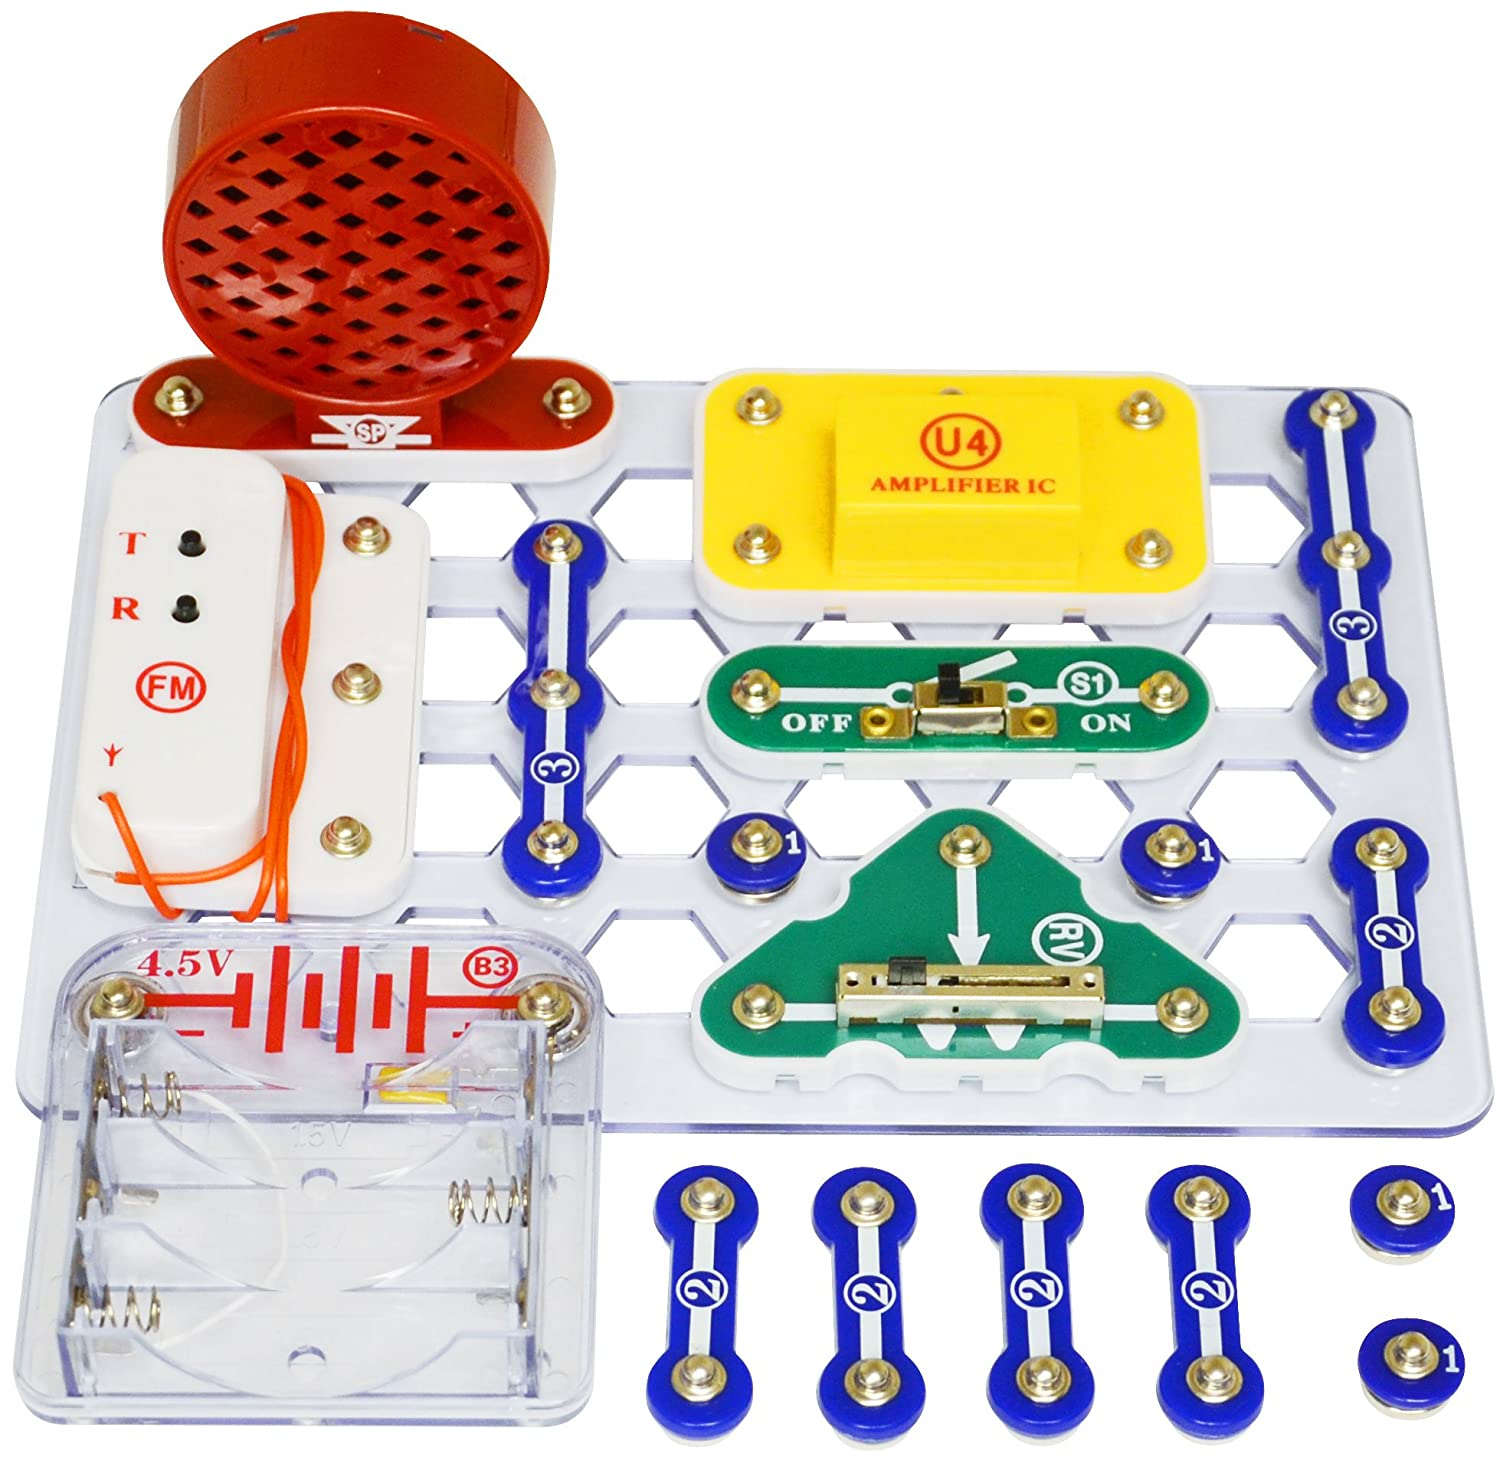 Snap Circuits Fm Radio Kit Elenco Electronics Inc Scp 02 8d 7hbe Qzbh Electronic Set From The Manufacturer Elencos Makes Learning